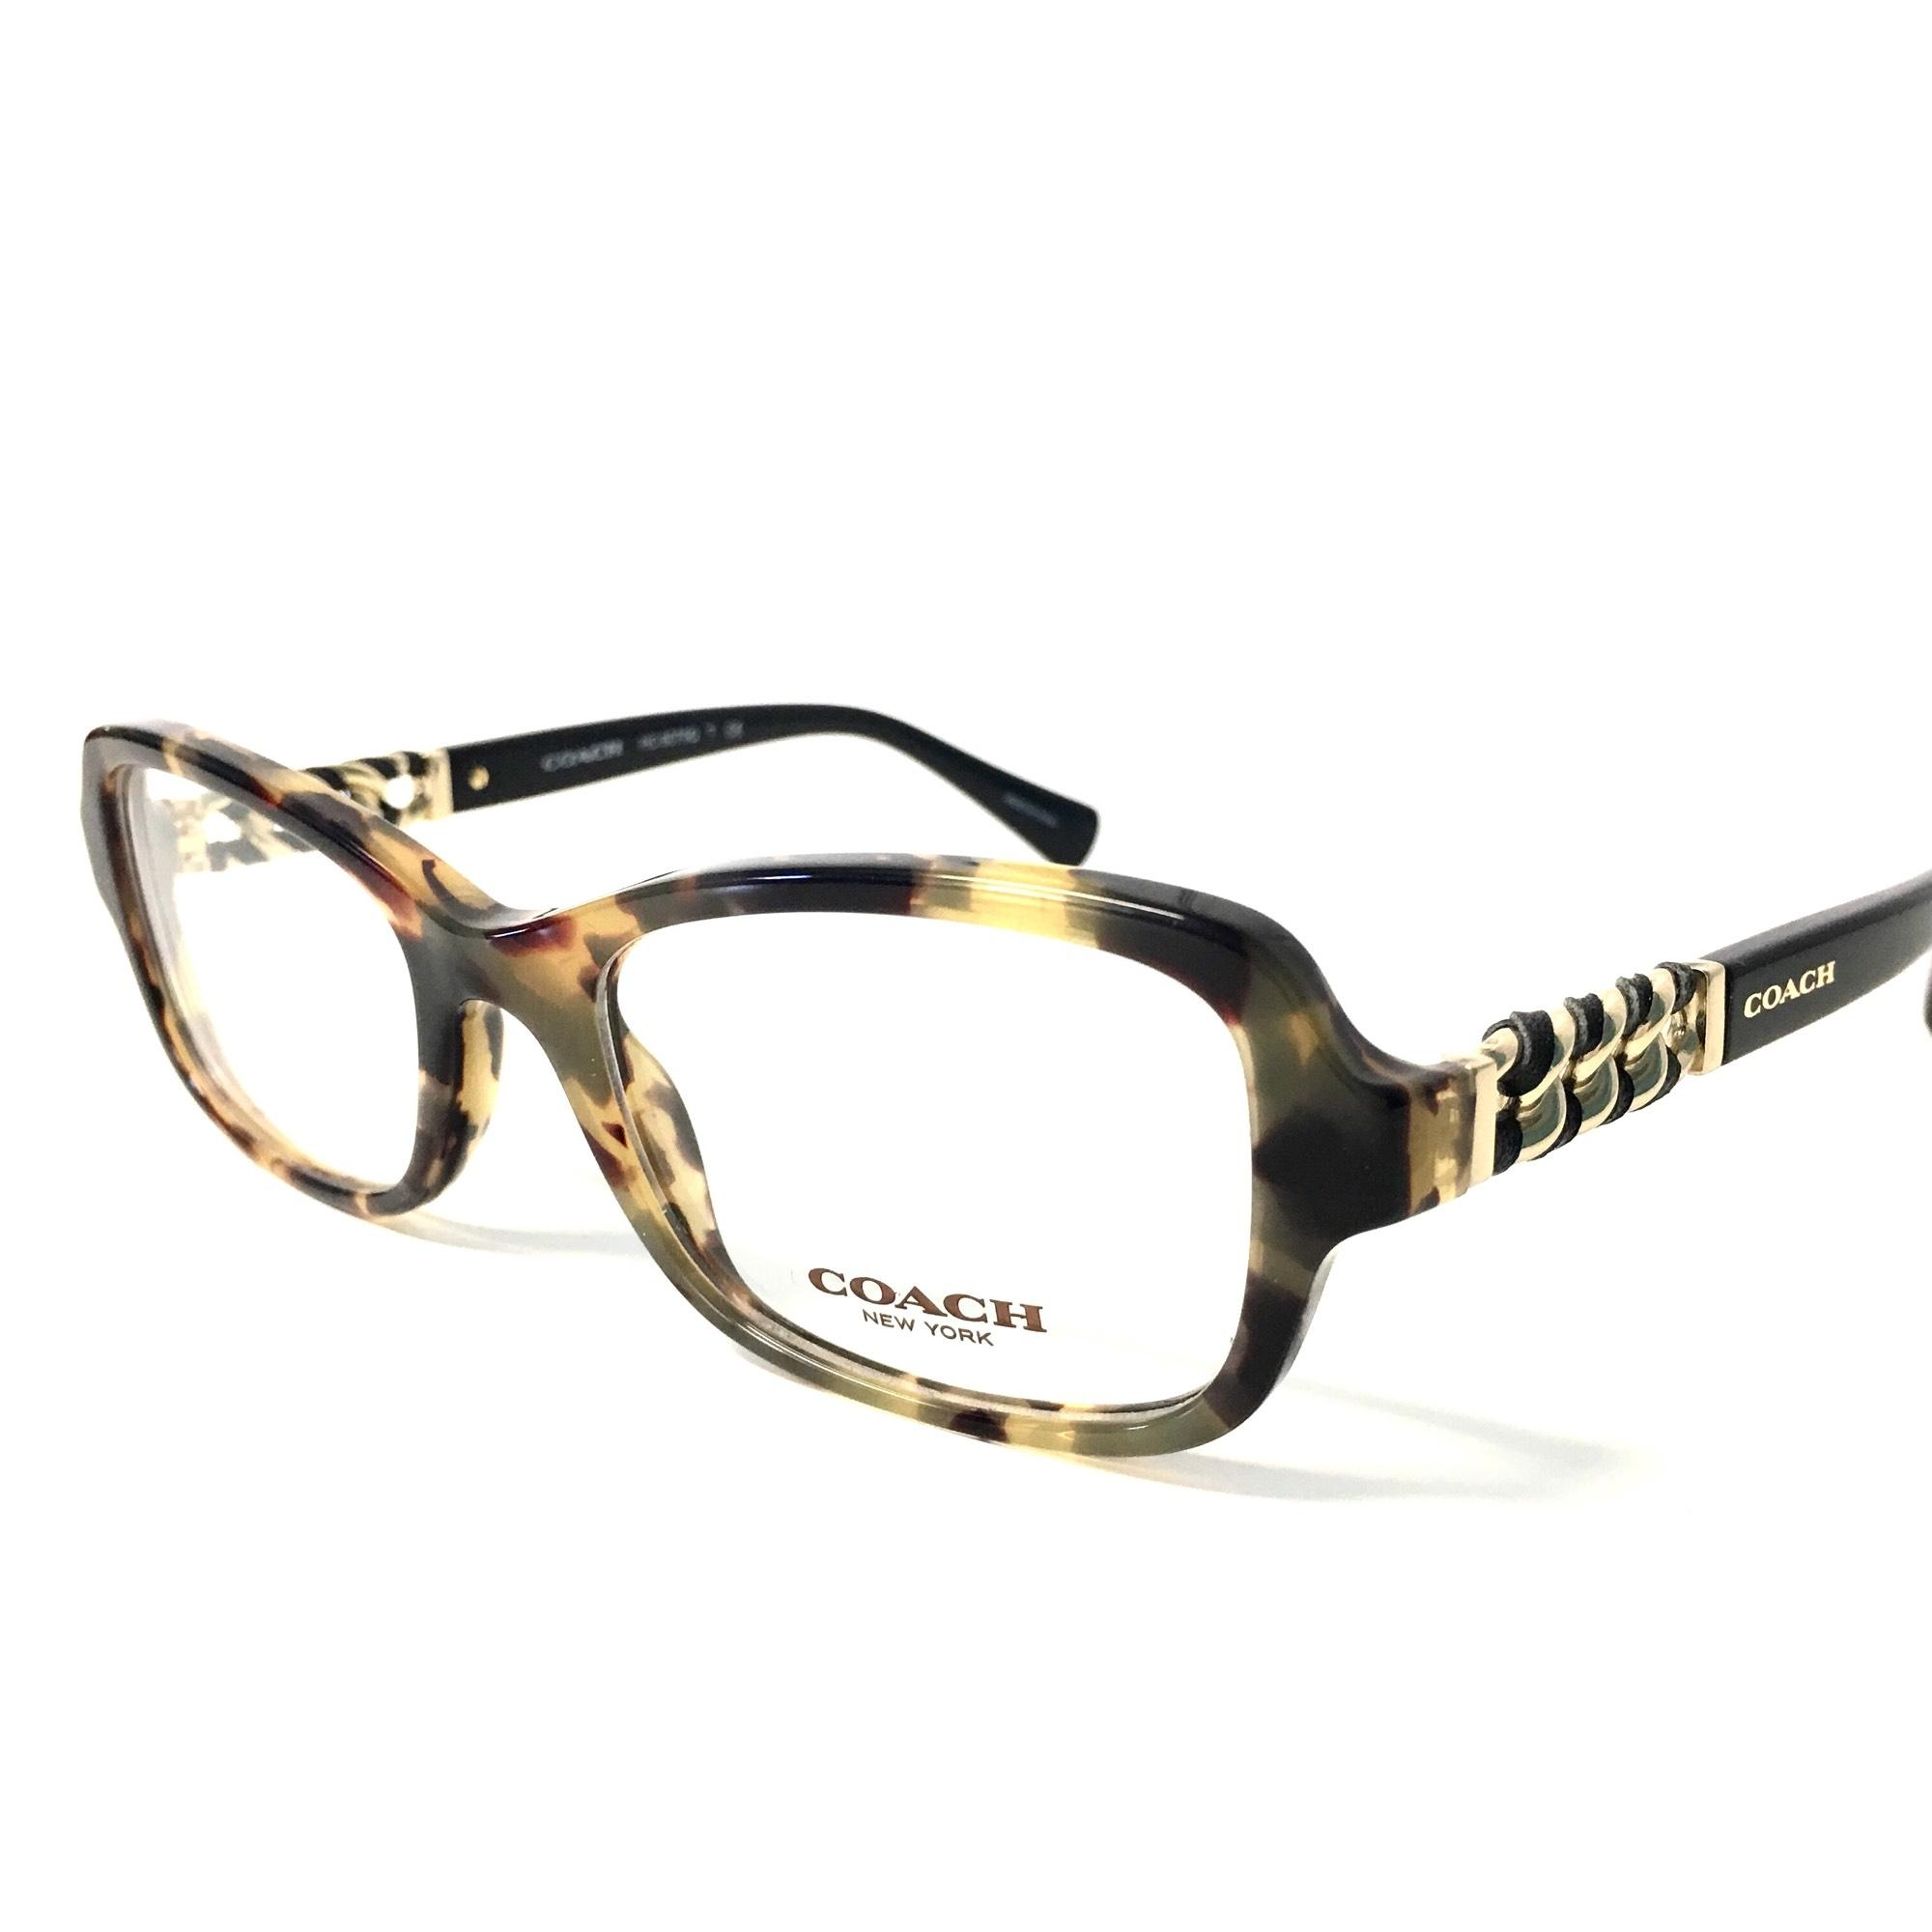 15cda874618 ... new zealand coach tortoise gold coach womens eyeglasses with gold chain  accent 14634 c2ede